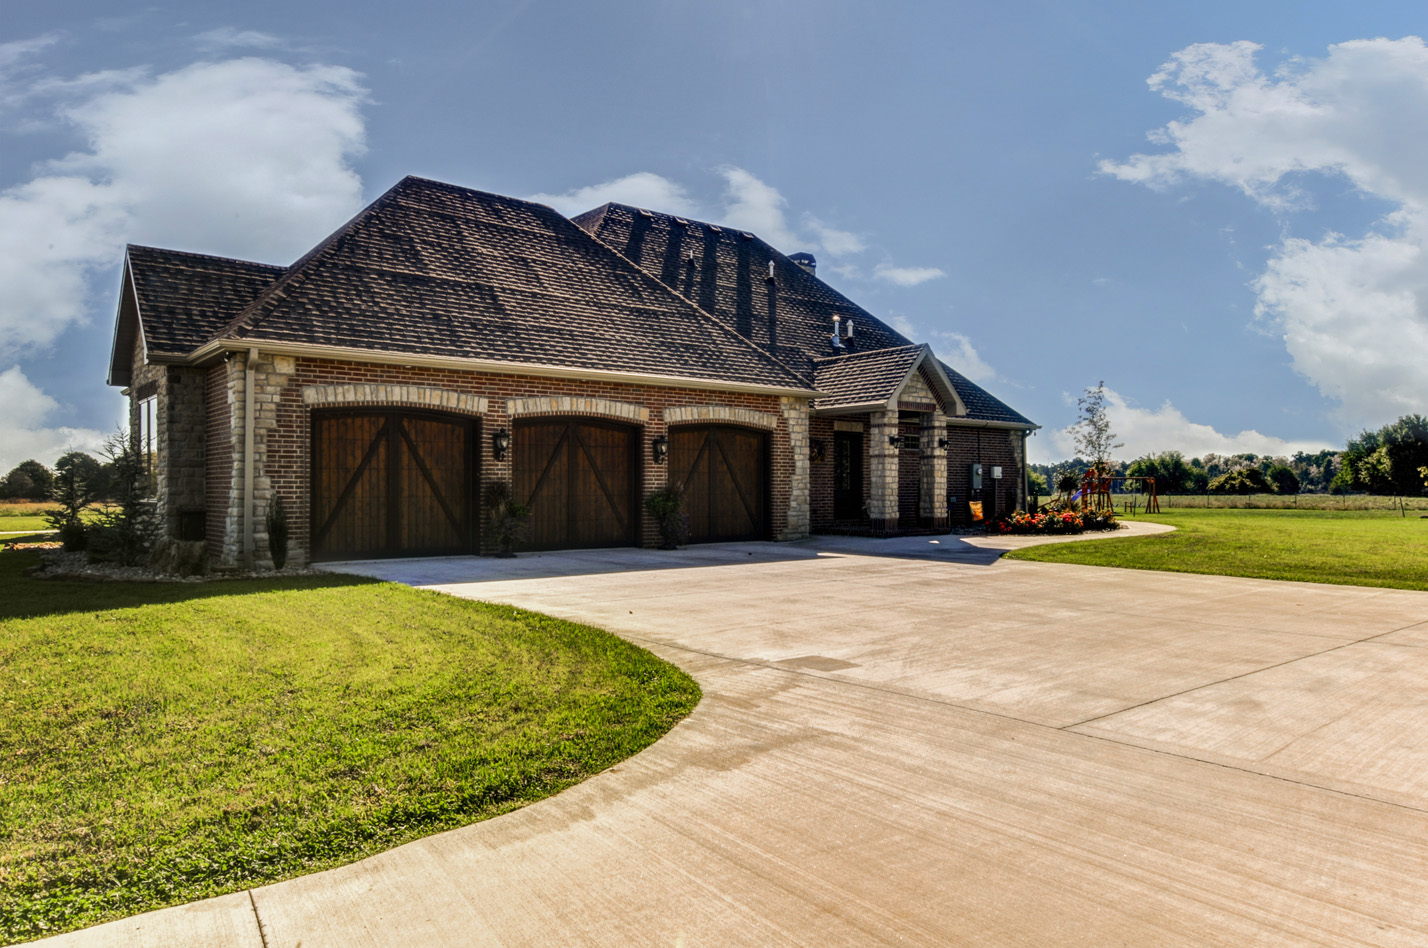 built-by-brett-custom-home-springfield-mo-13735-lawrence-2100-exterior-003.jpg